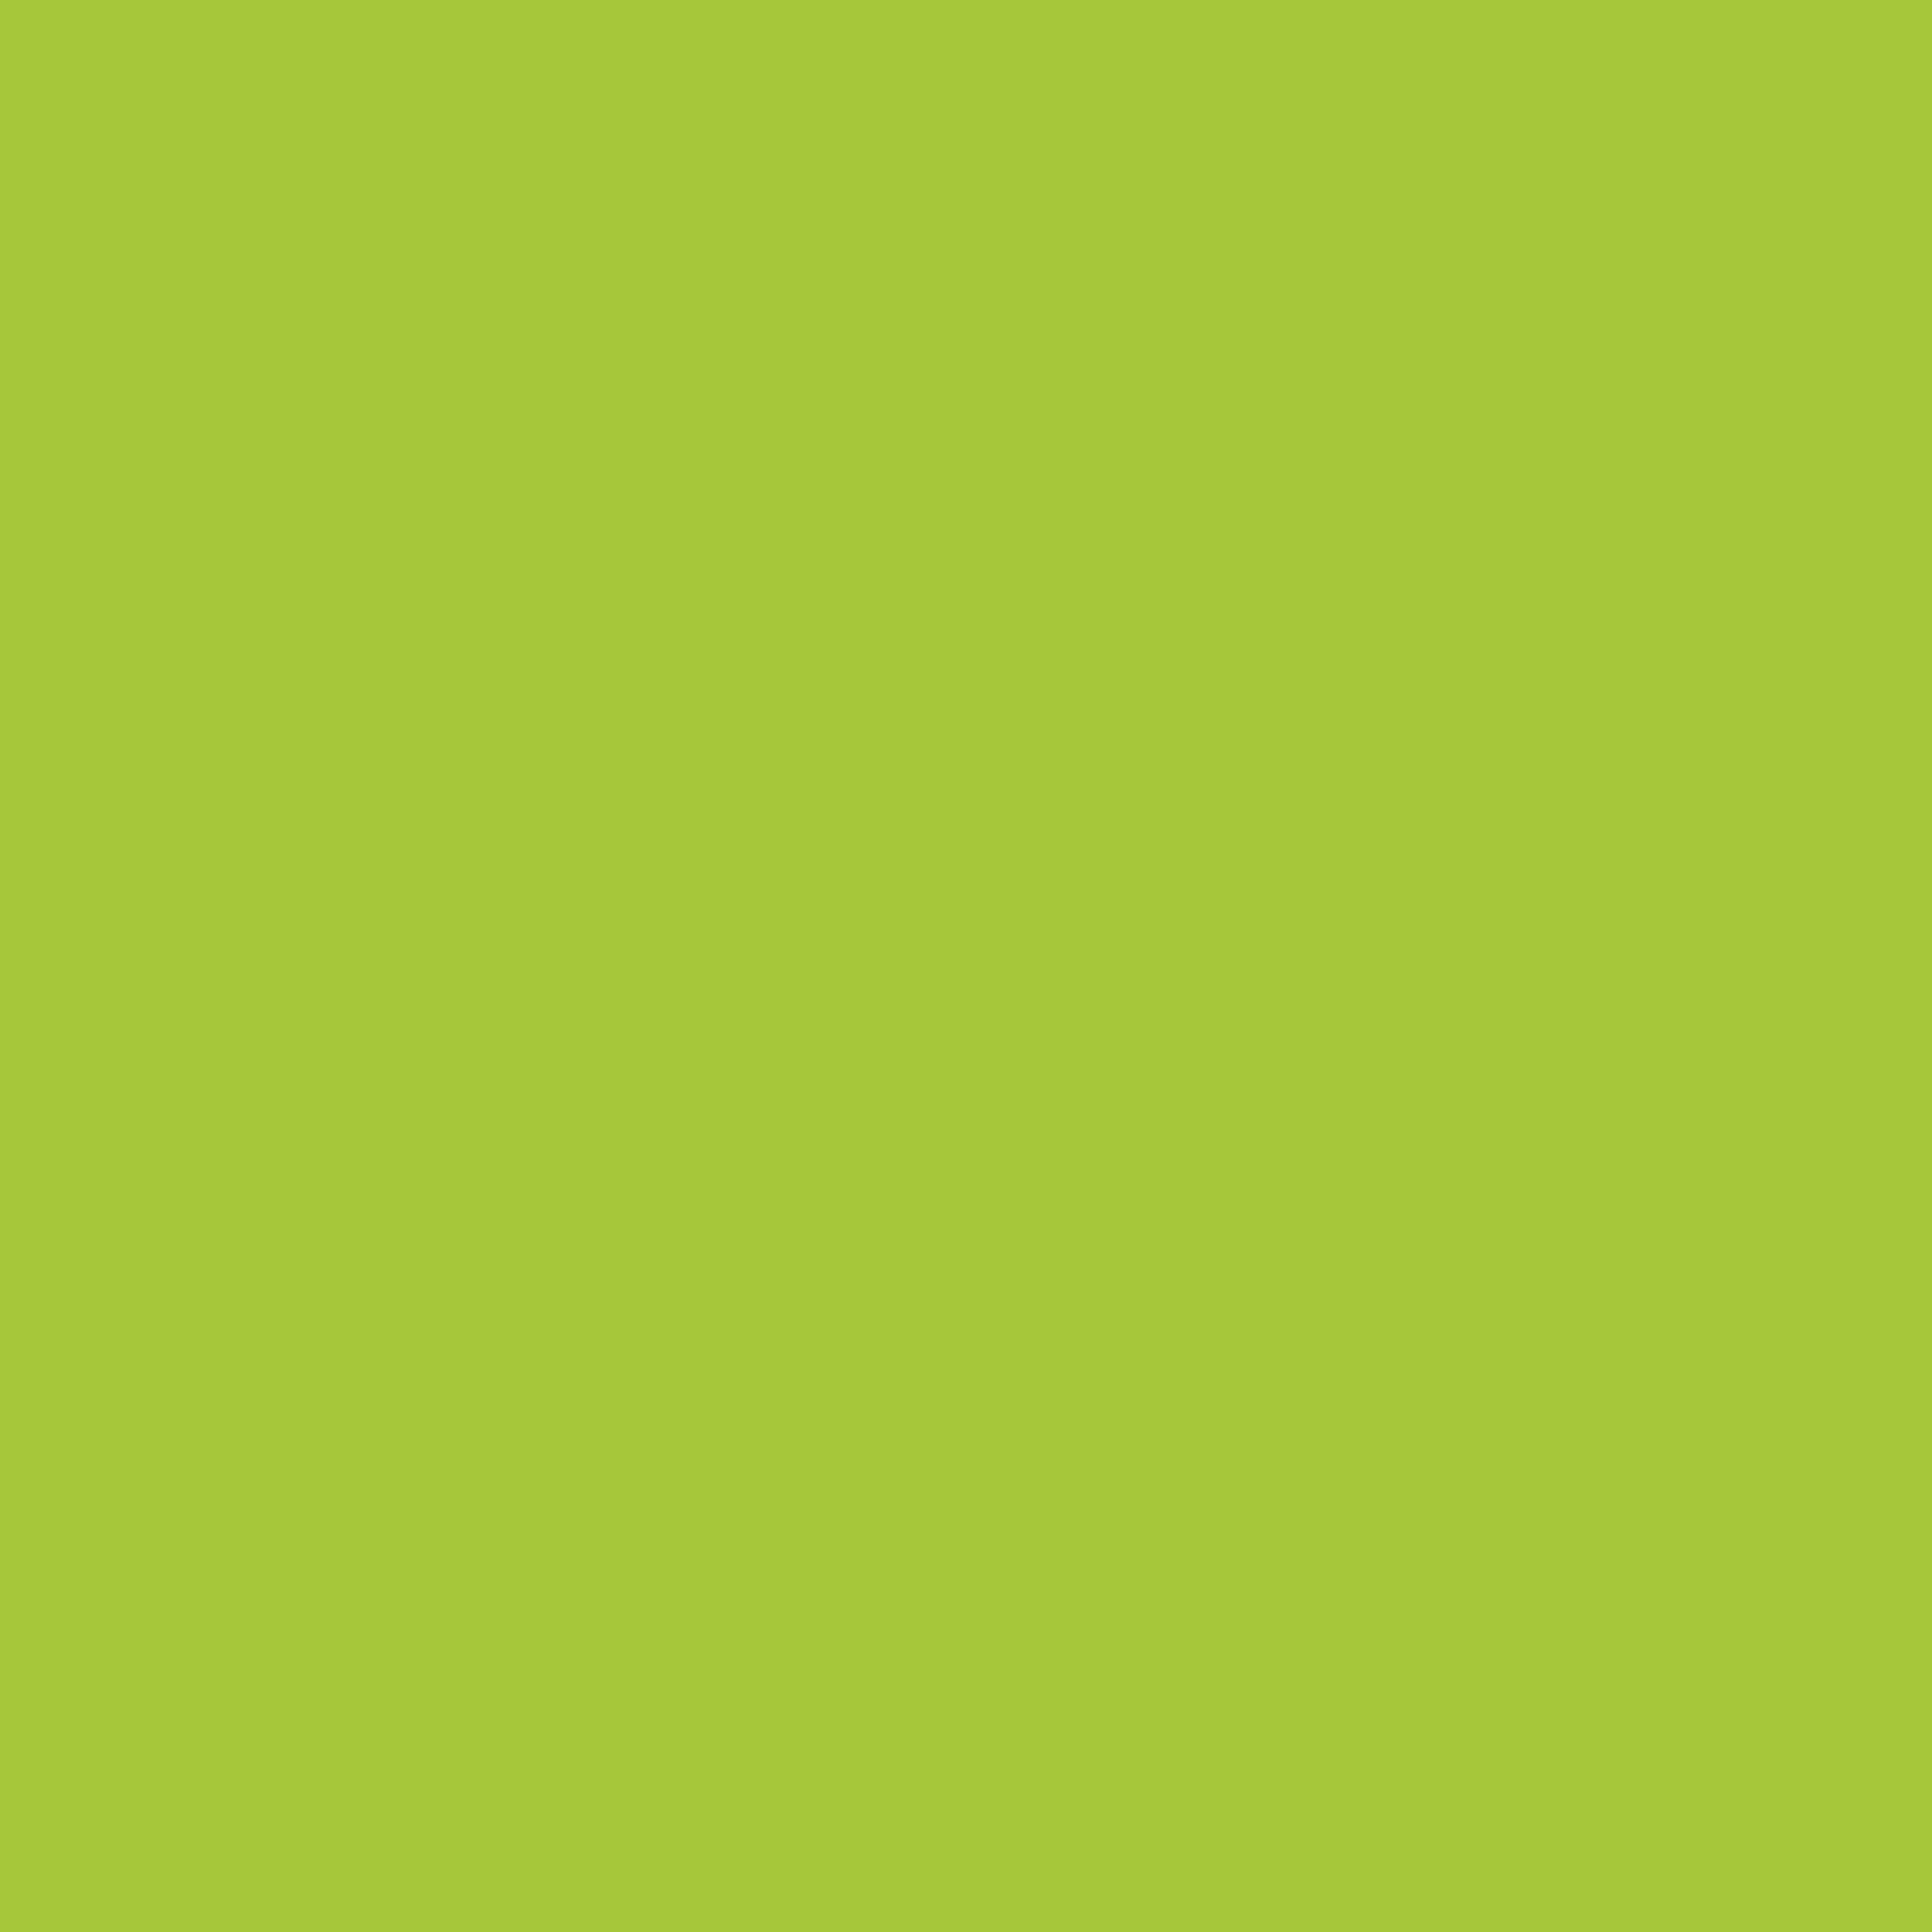 2048x2048 Android Green Solid Color Background